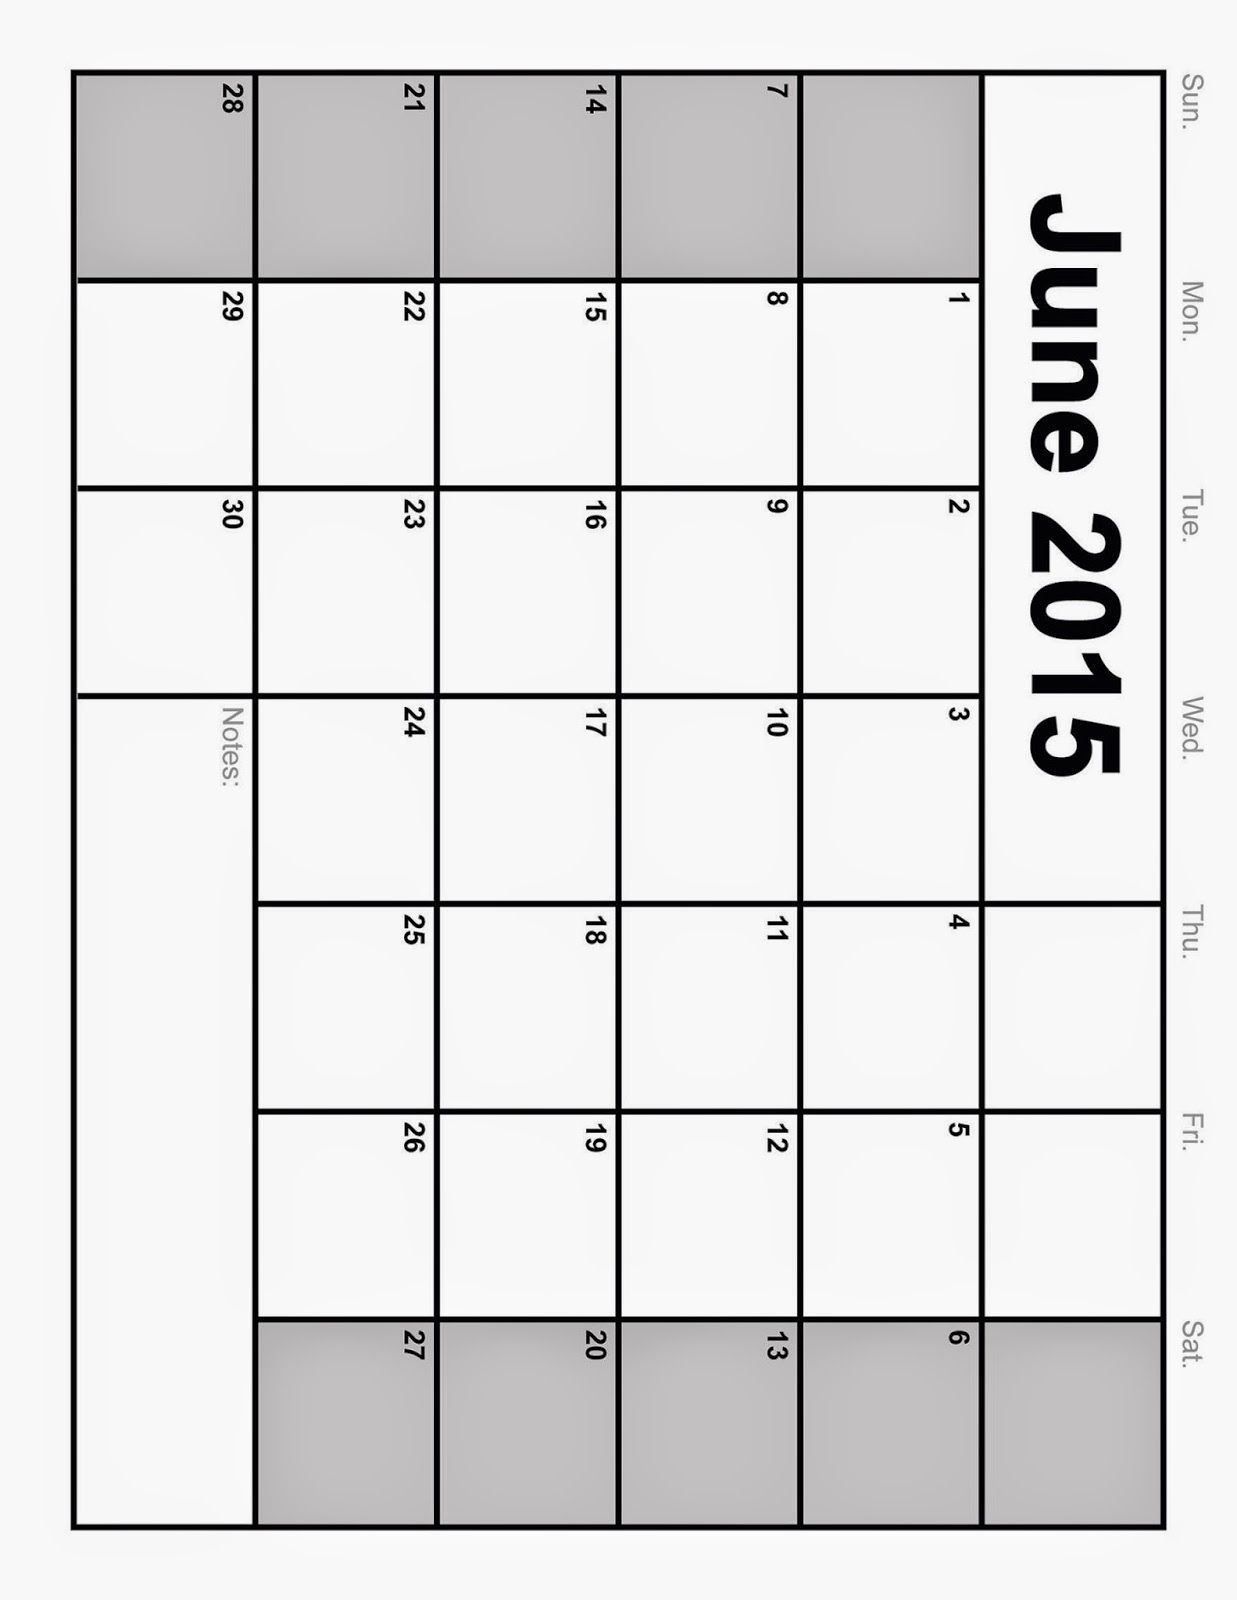 ... print out of it free download june 2015 printable blank calendar